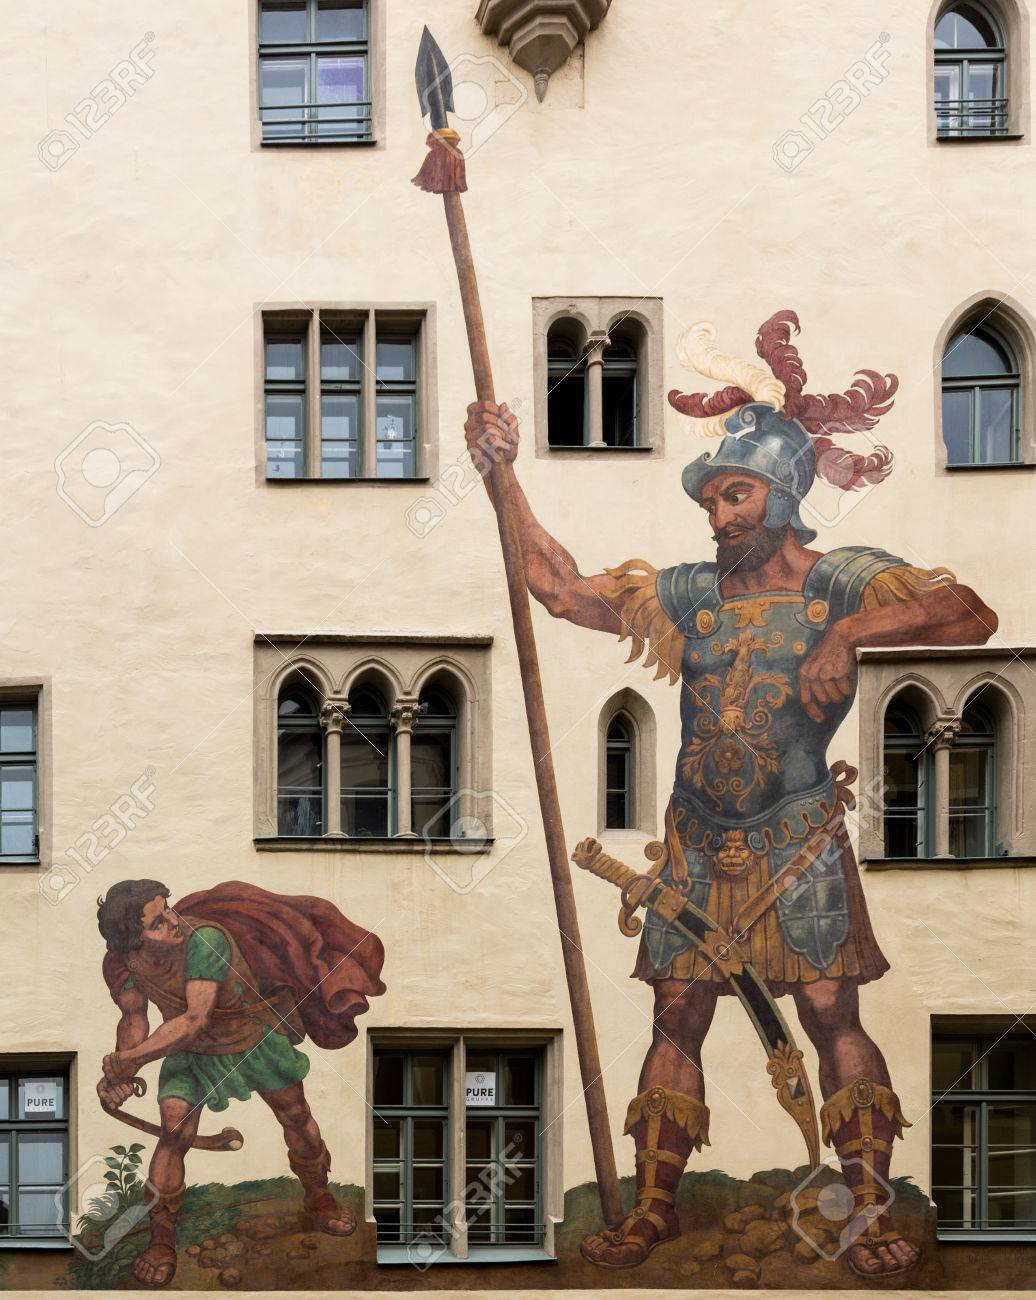 mural of david and goliath painted by melchior bocksberger in